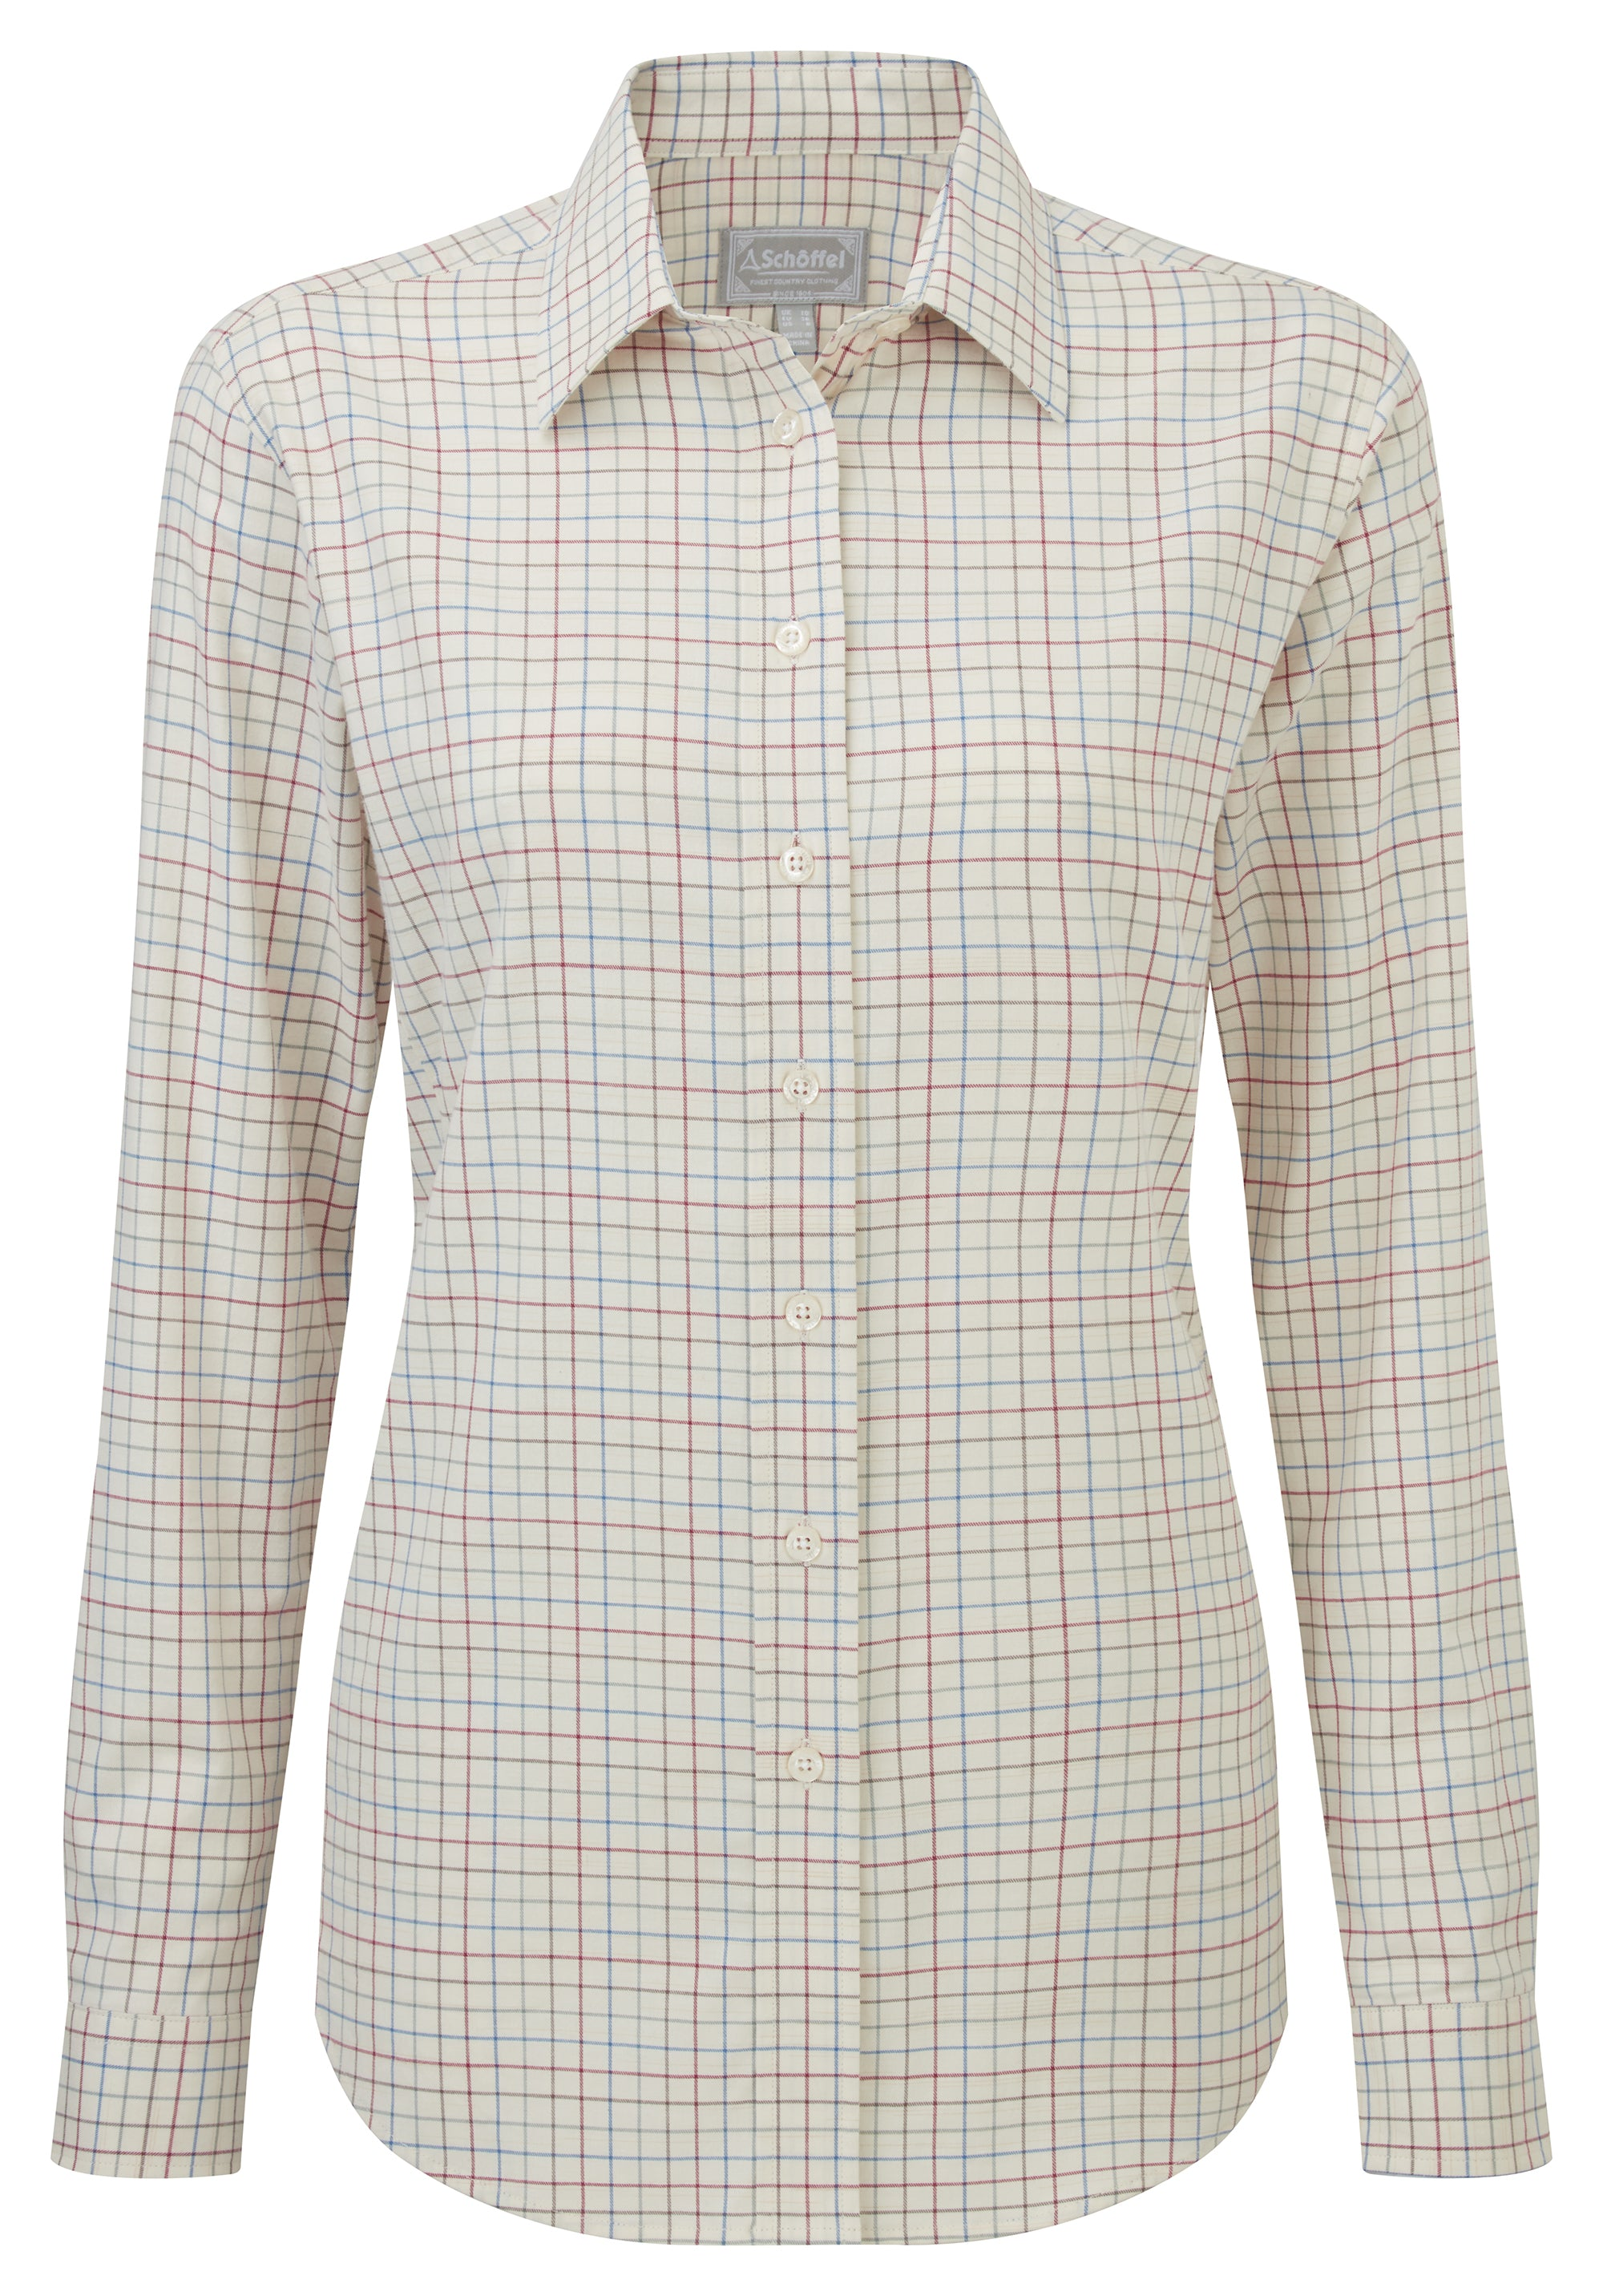 Schoffel Ashley Tattersall Shirt for Ladies in Grey Chilli Mole Cobalt